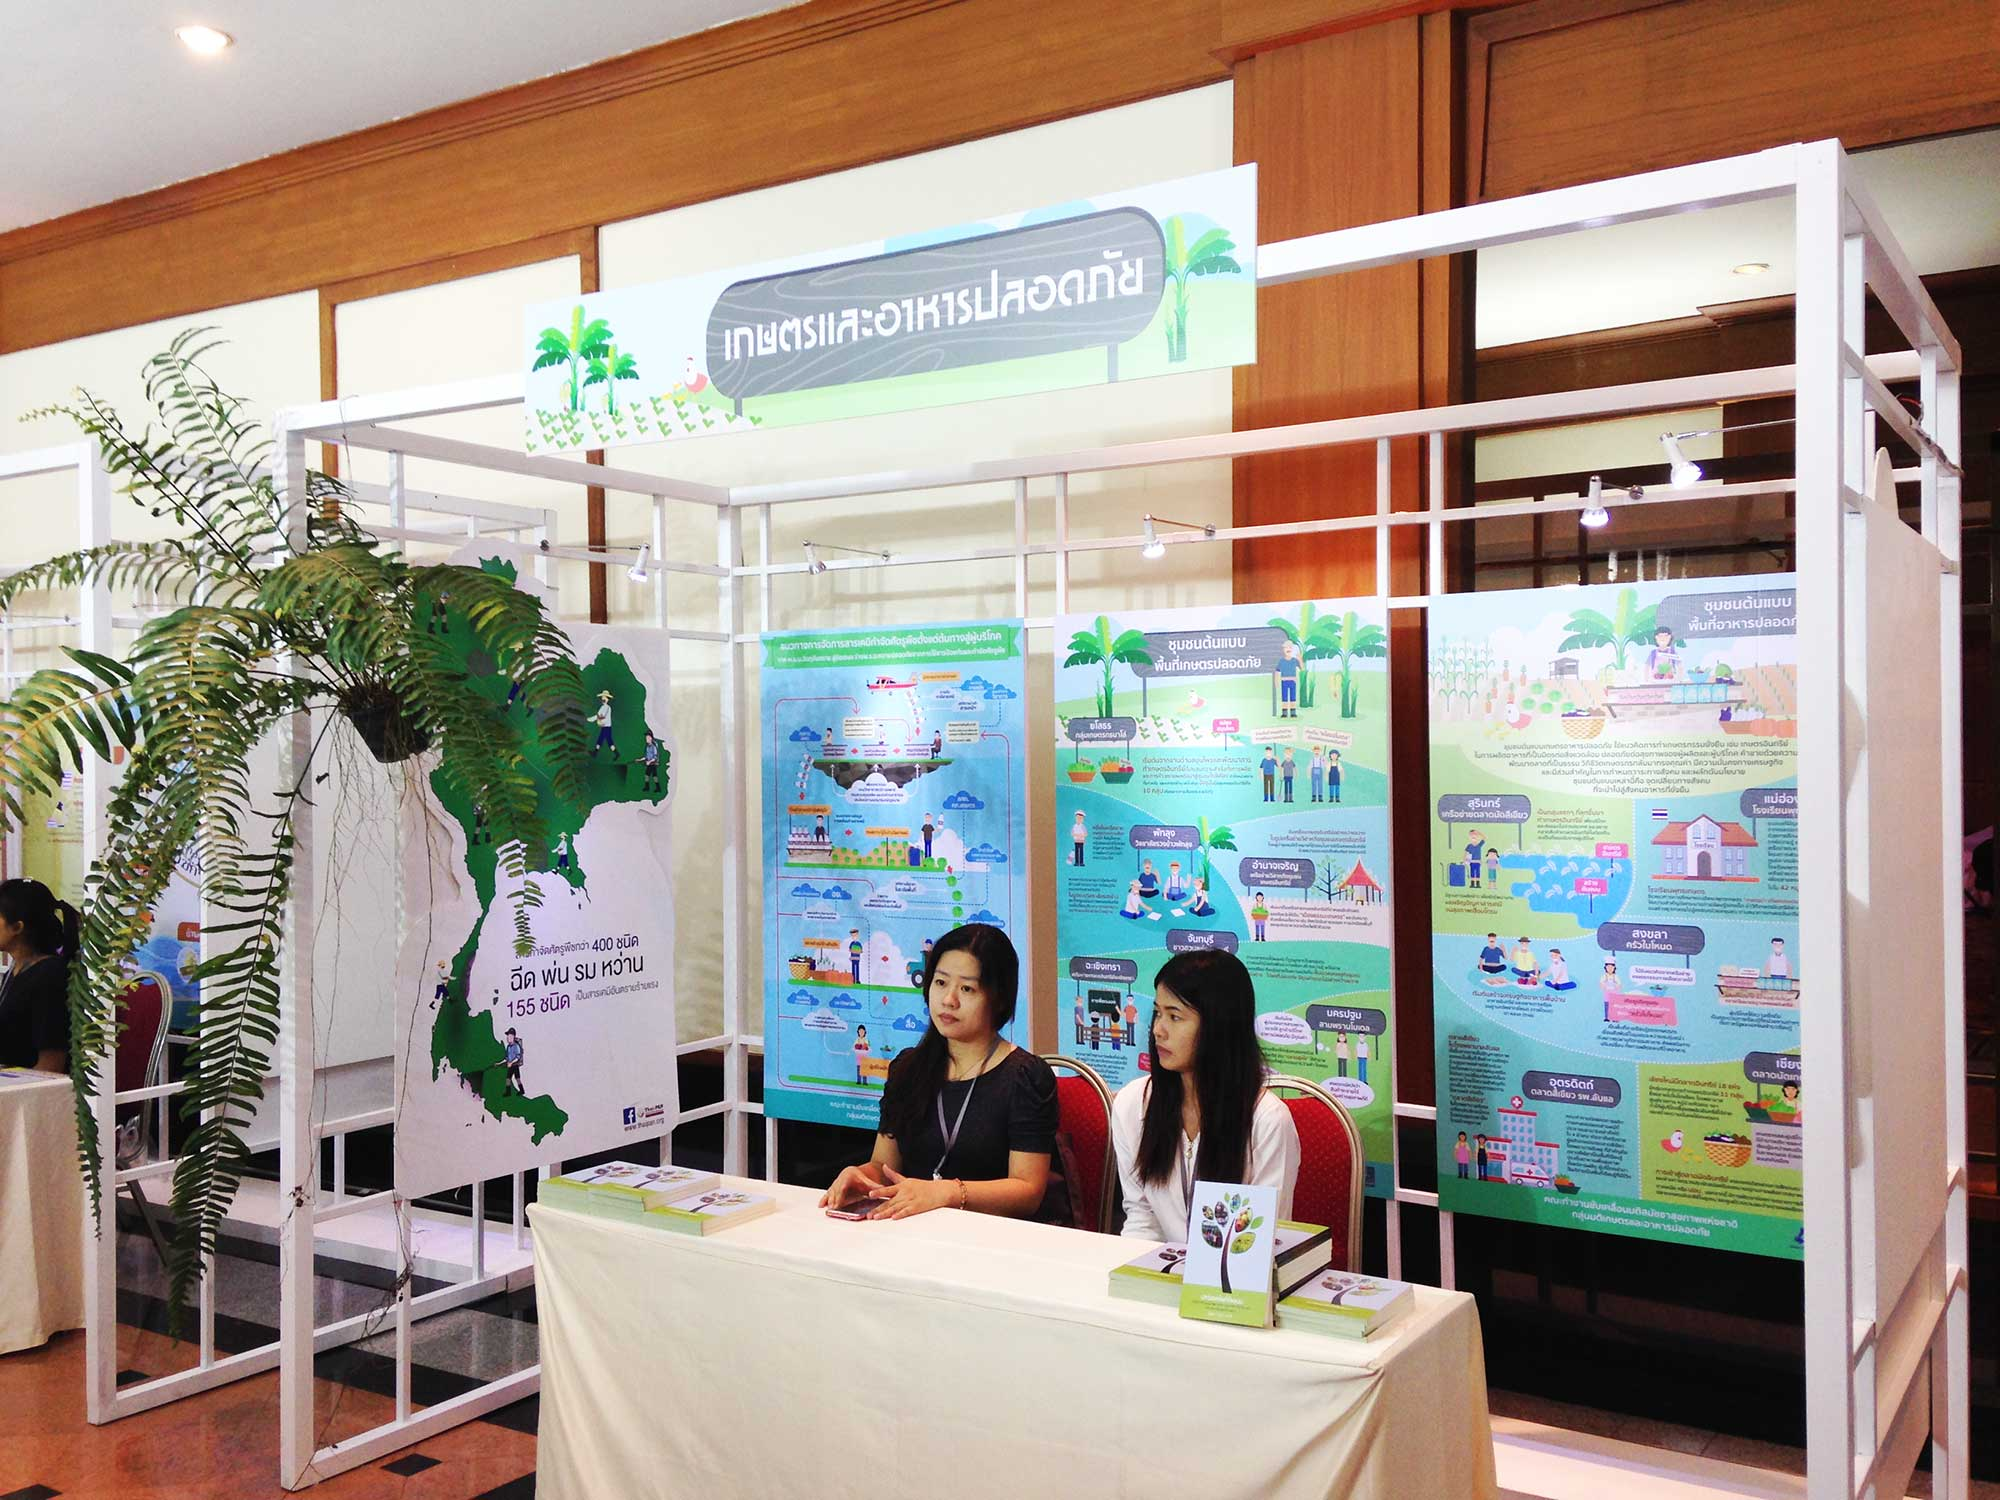 Agriculture and food safety booth at the forum